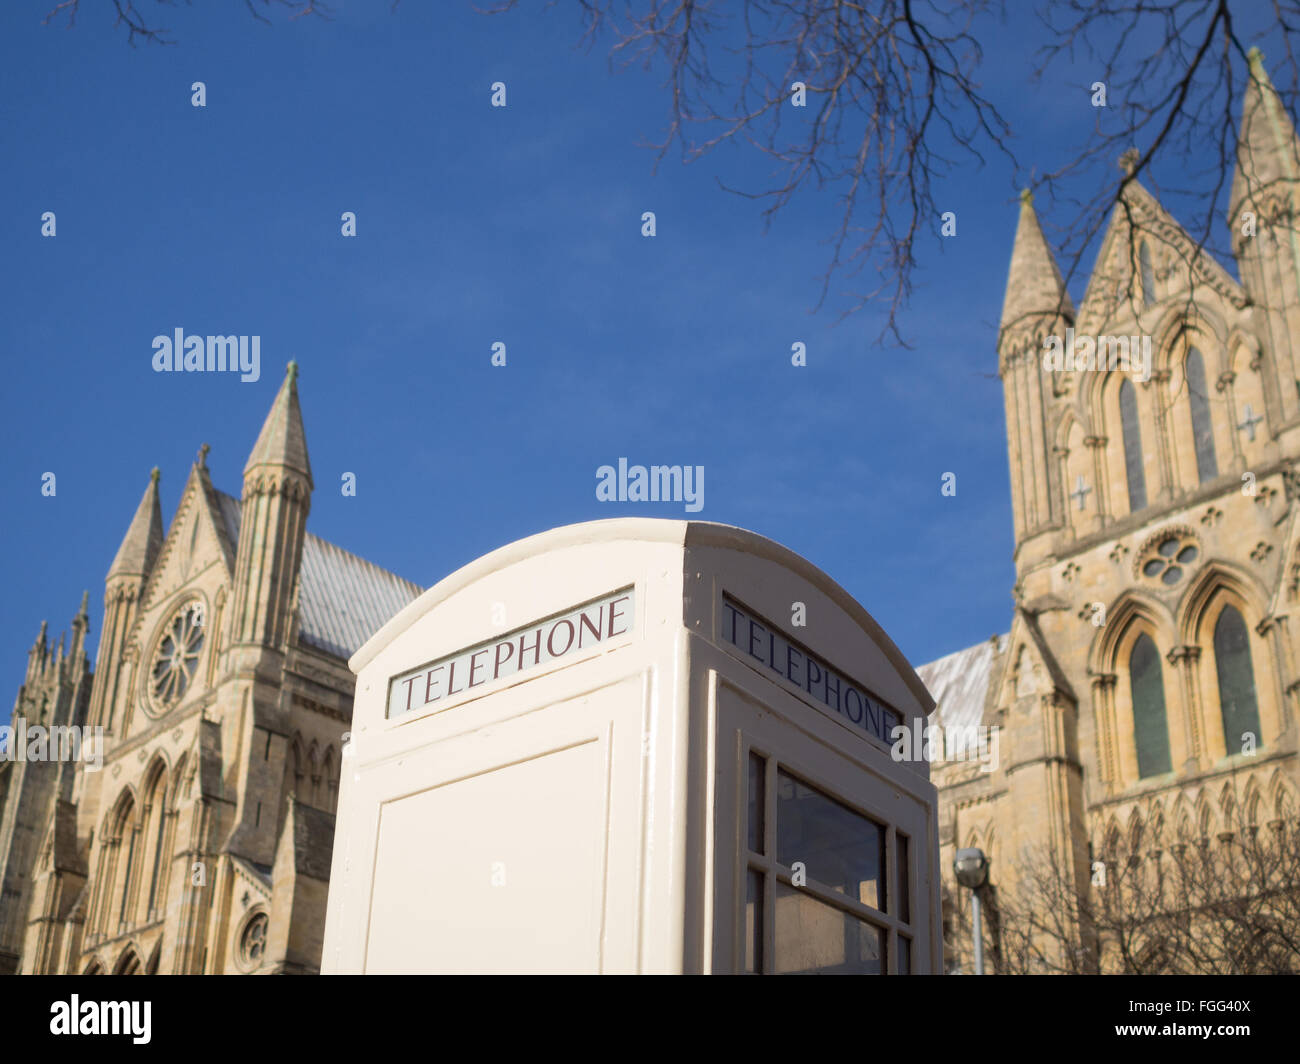 A Kingston Communication telephone box opposite Beverley Minster - Stock Image